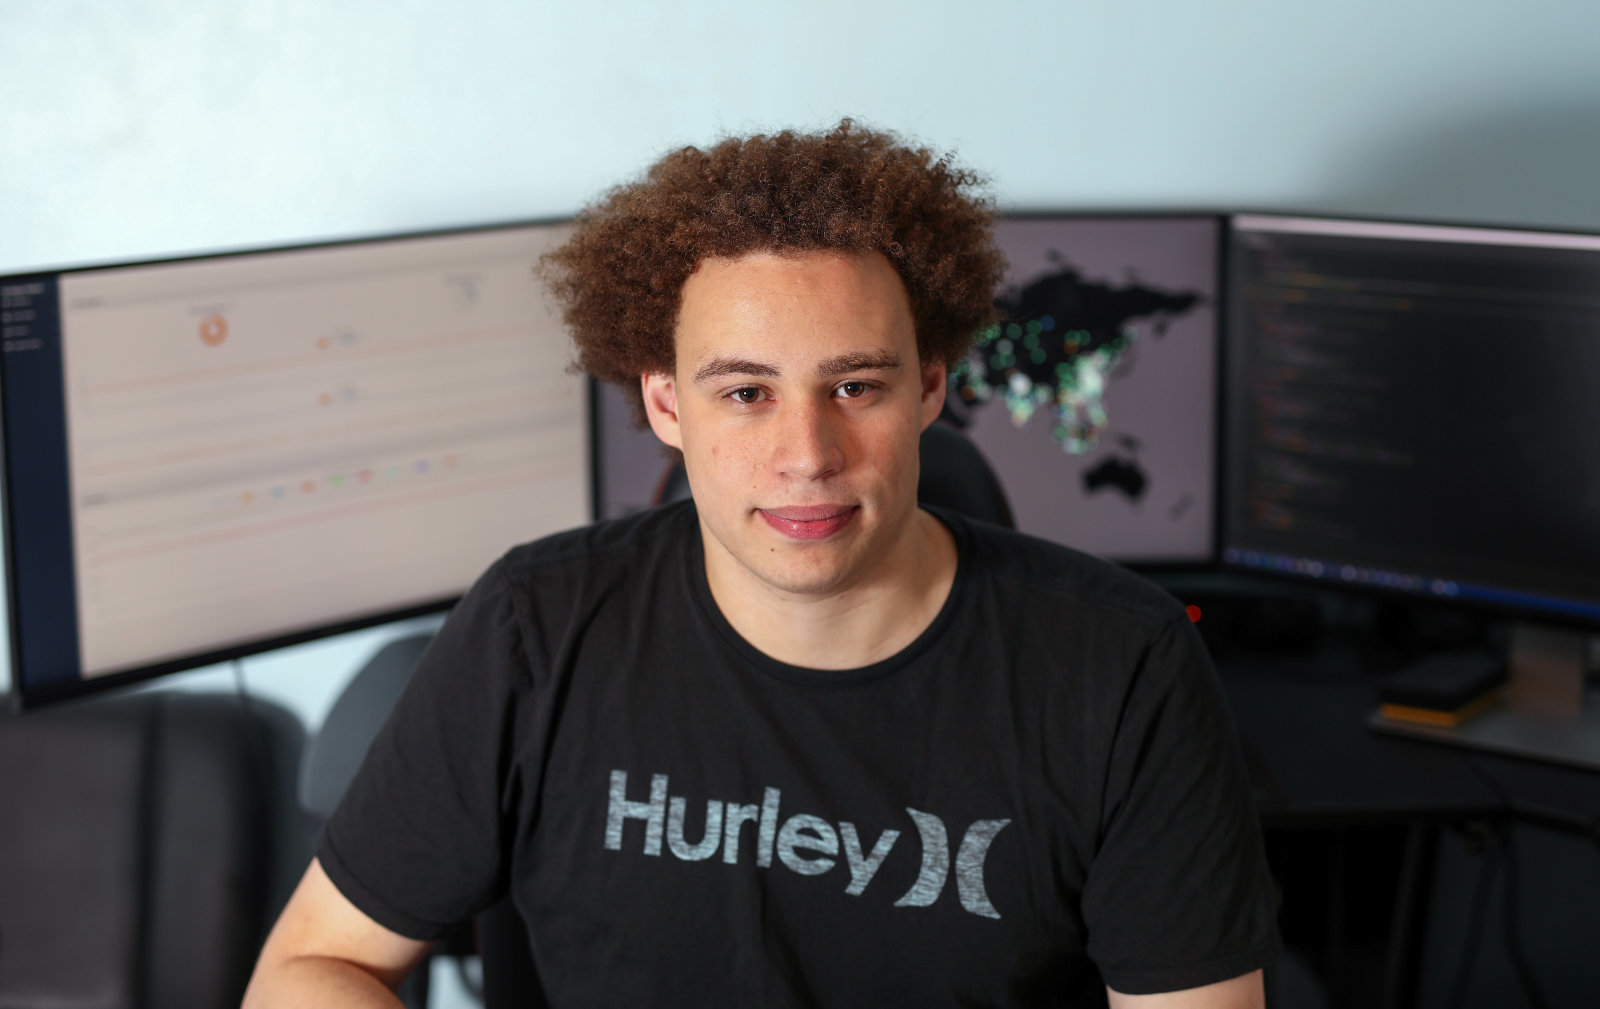 Marcus Hutchins, digital security researcher for Kryptos Logic, poses for a photograph in front of his computer in his bedroom in Ilfracombe, U.K., on Tuesday, July 4, 2017. Hutchins, the 23-year-old who saved the world from a devastating cyberattack in May was asleep in his bed in the English seaside town of Ilfracombe last week after a night of partying when another online extortion campaign spread across the globe. Photographer: Chris Ratcliffe/Bloomberg via Getty Images